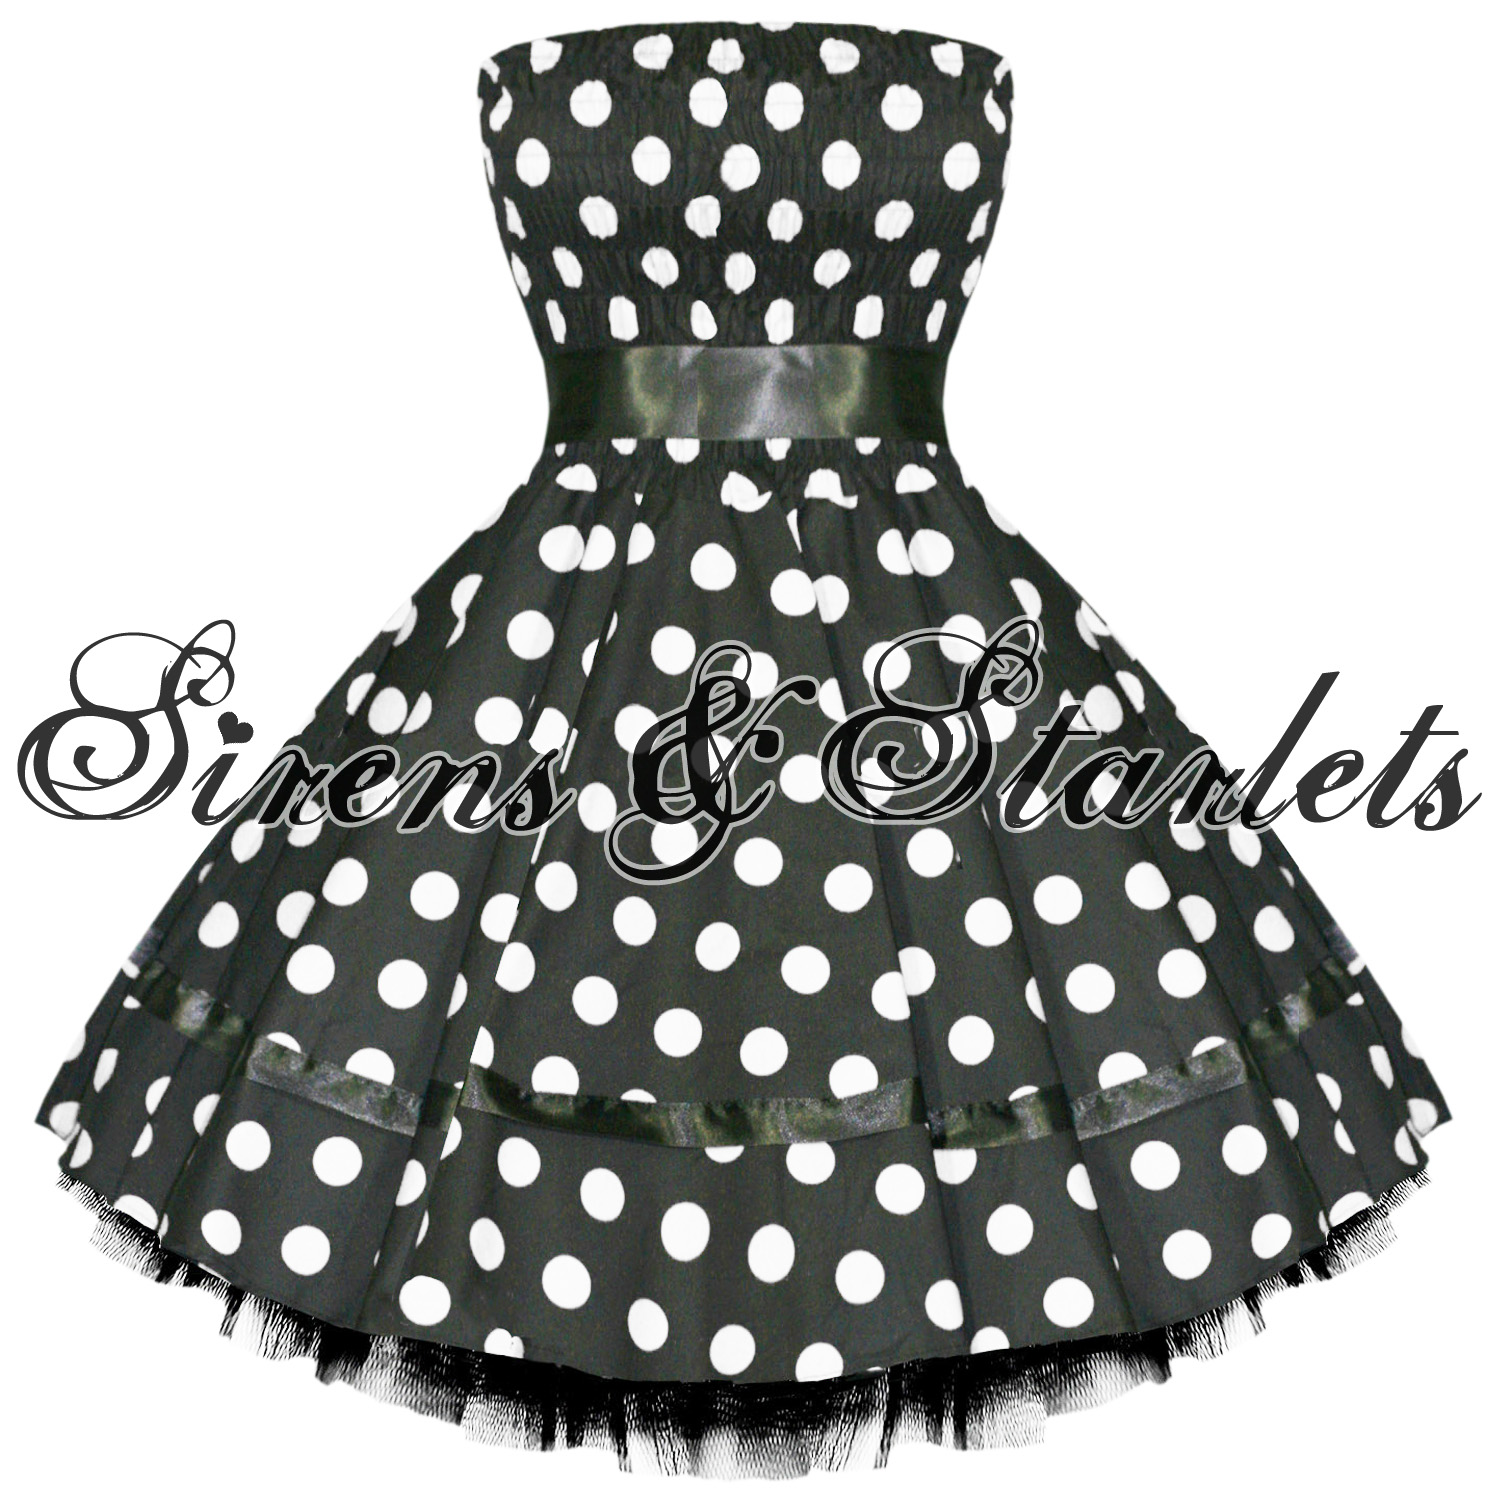 BLACK-POLKA-DOT-VTG-50S-SWING-PINUP-PARTY-PROM-DRESS